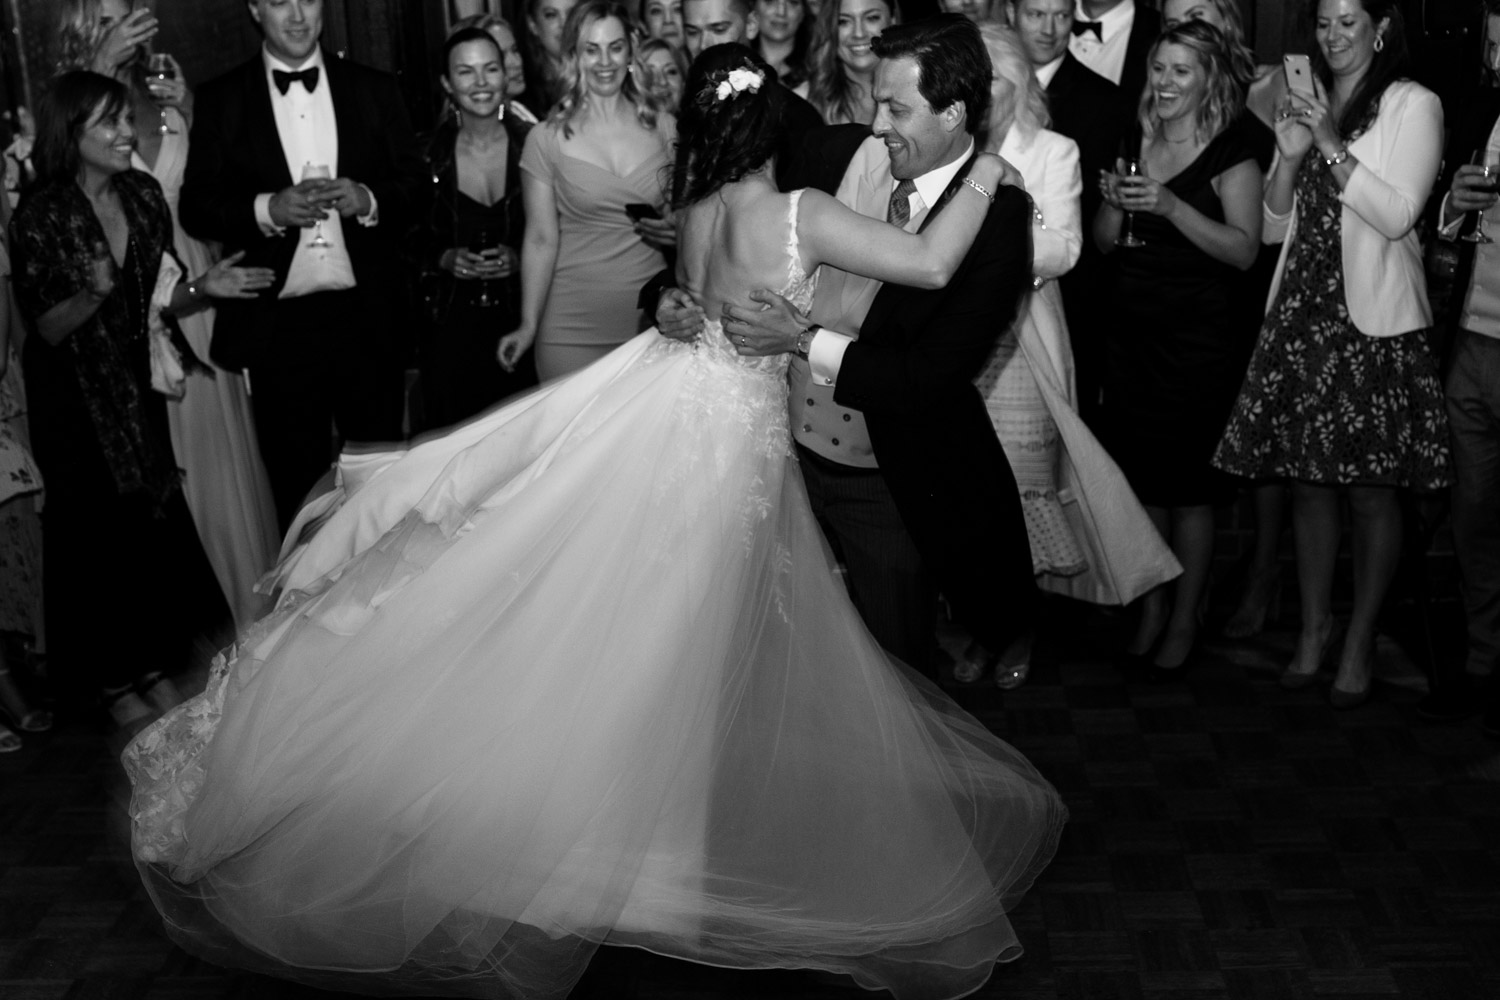 Groom spinning bride during first dance at Brock House Vancouver Wedding Venue